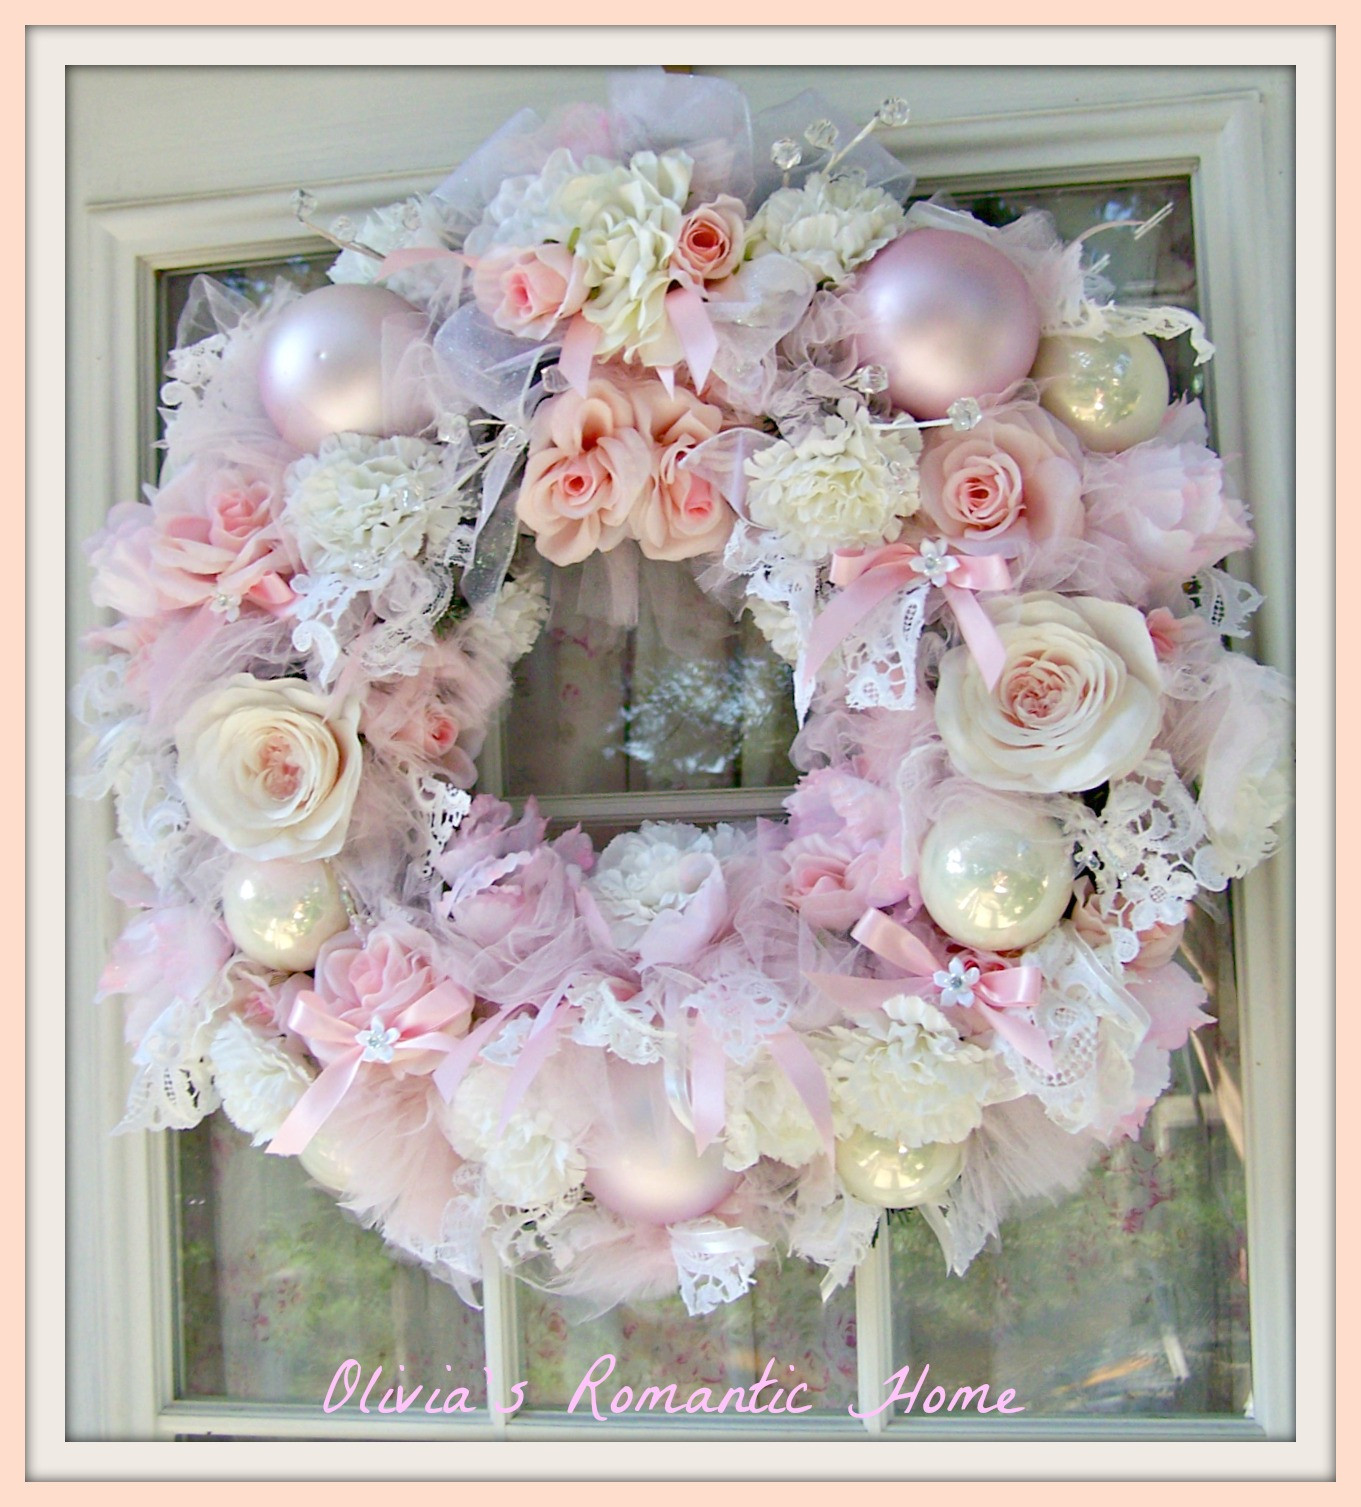 Best ideas about Shabby Chic Christmas . Save or Pin Olivia s Romantic Home Romantic Rose Wreath Now.